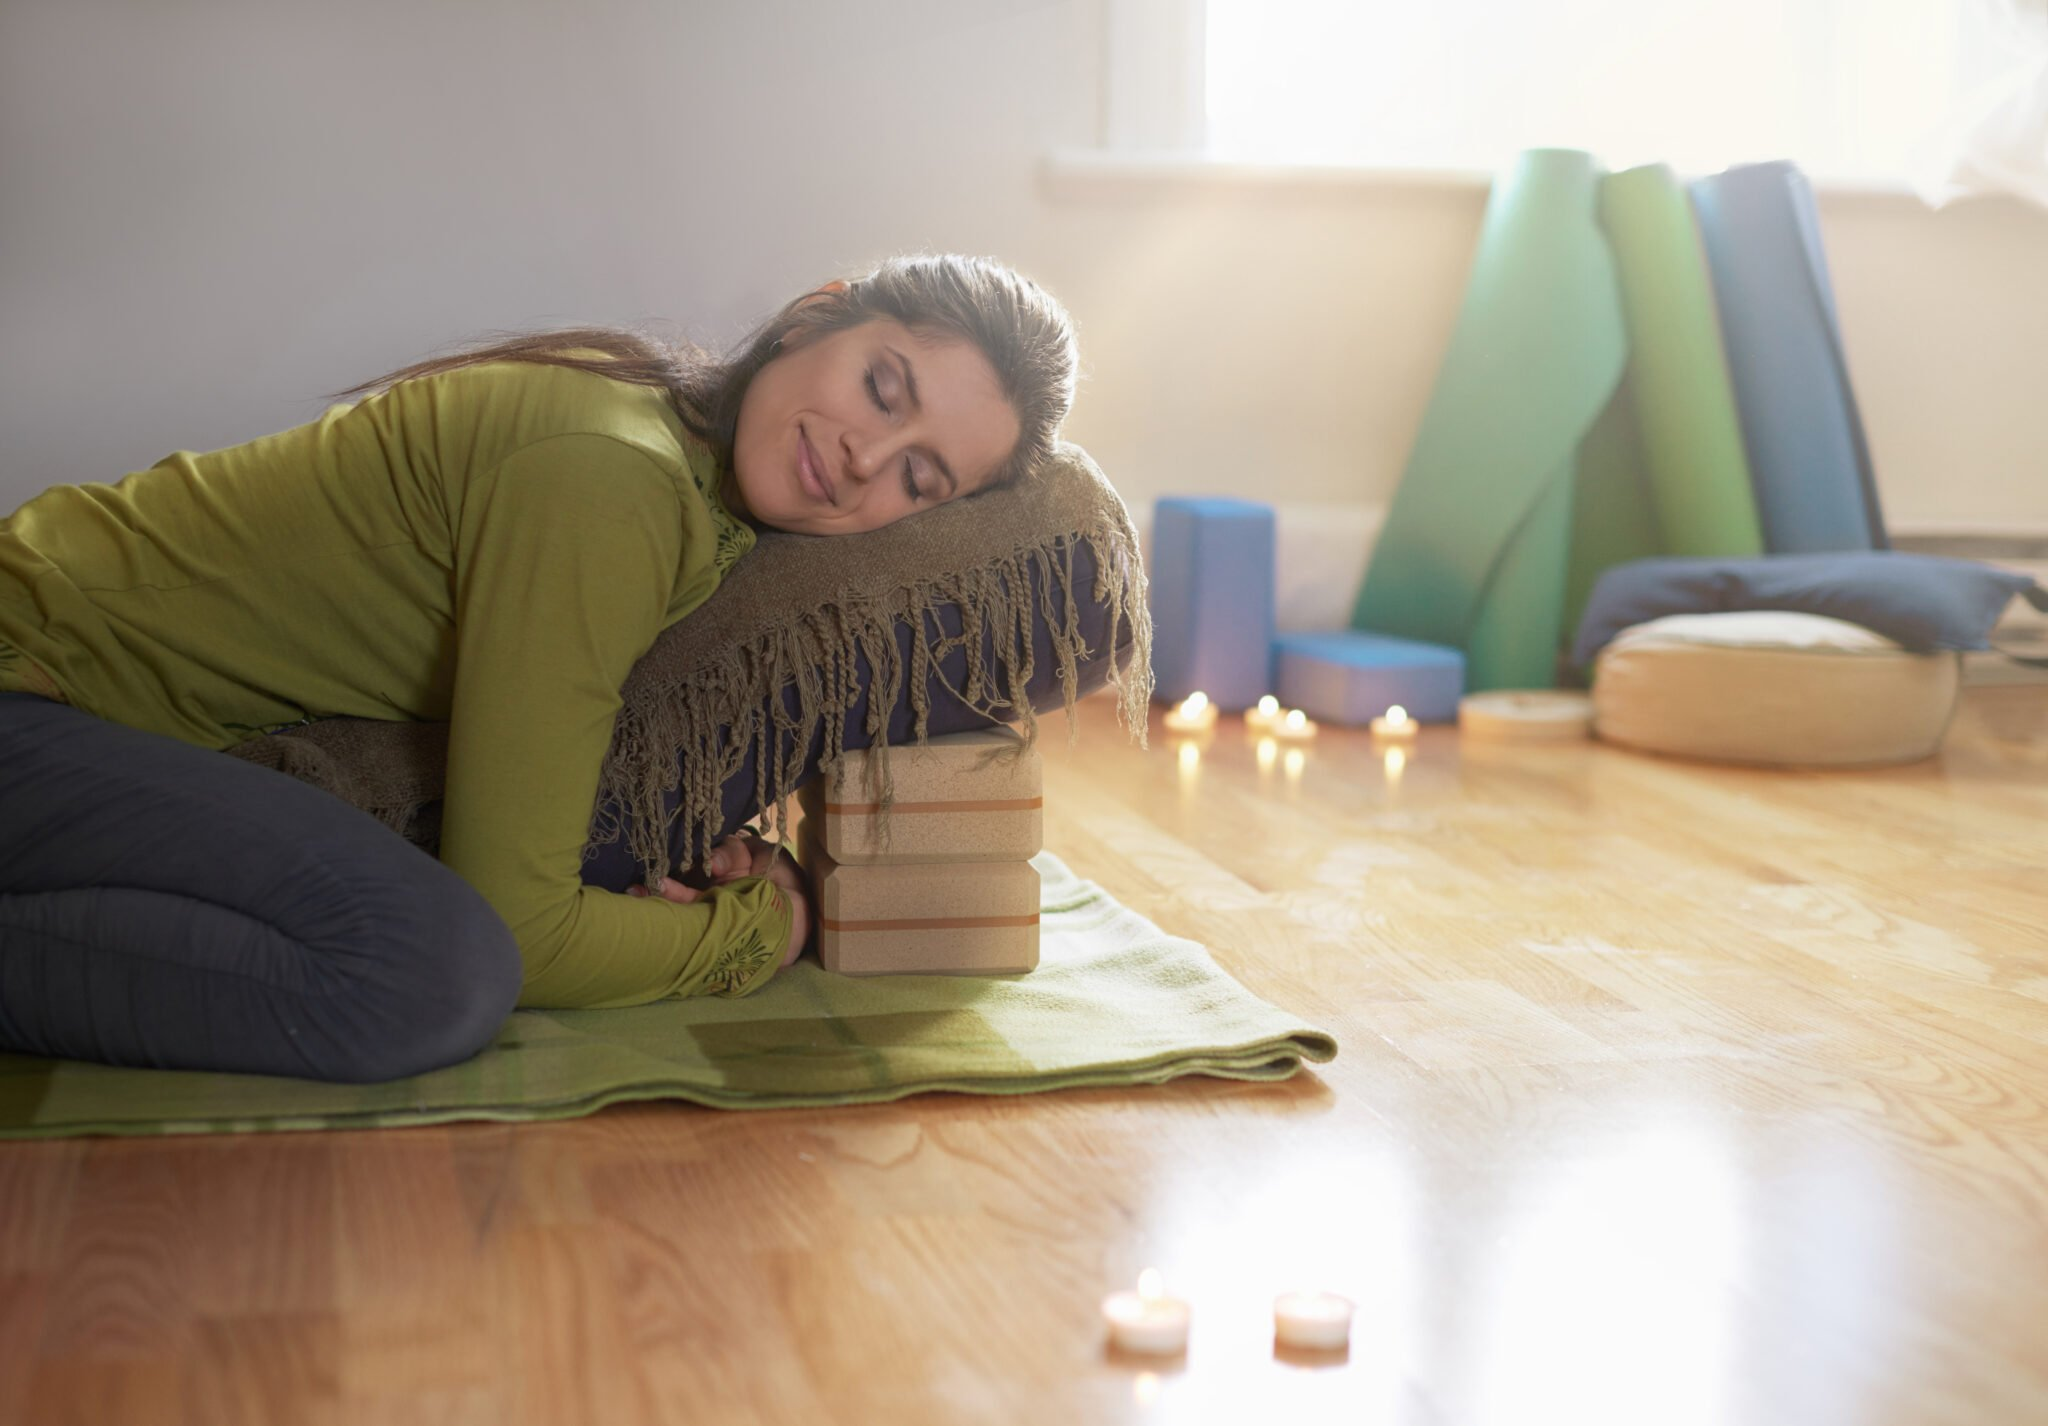 Serene lady relaxing and meditating on a yoga mat in a cozy house